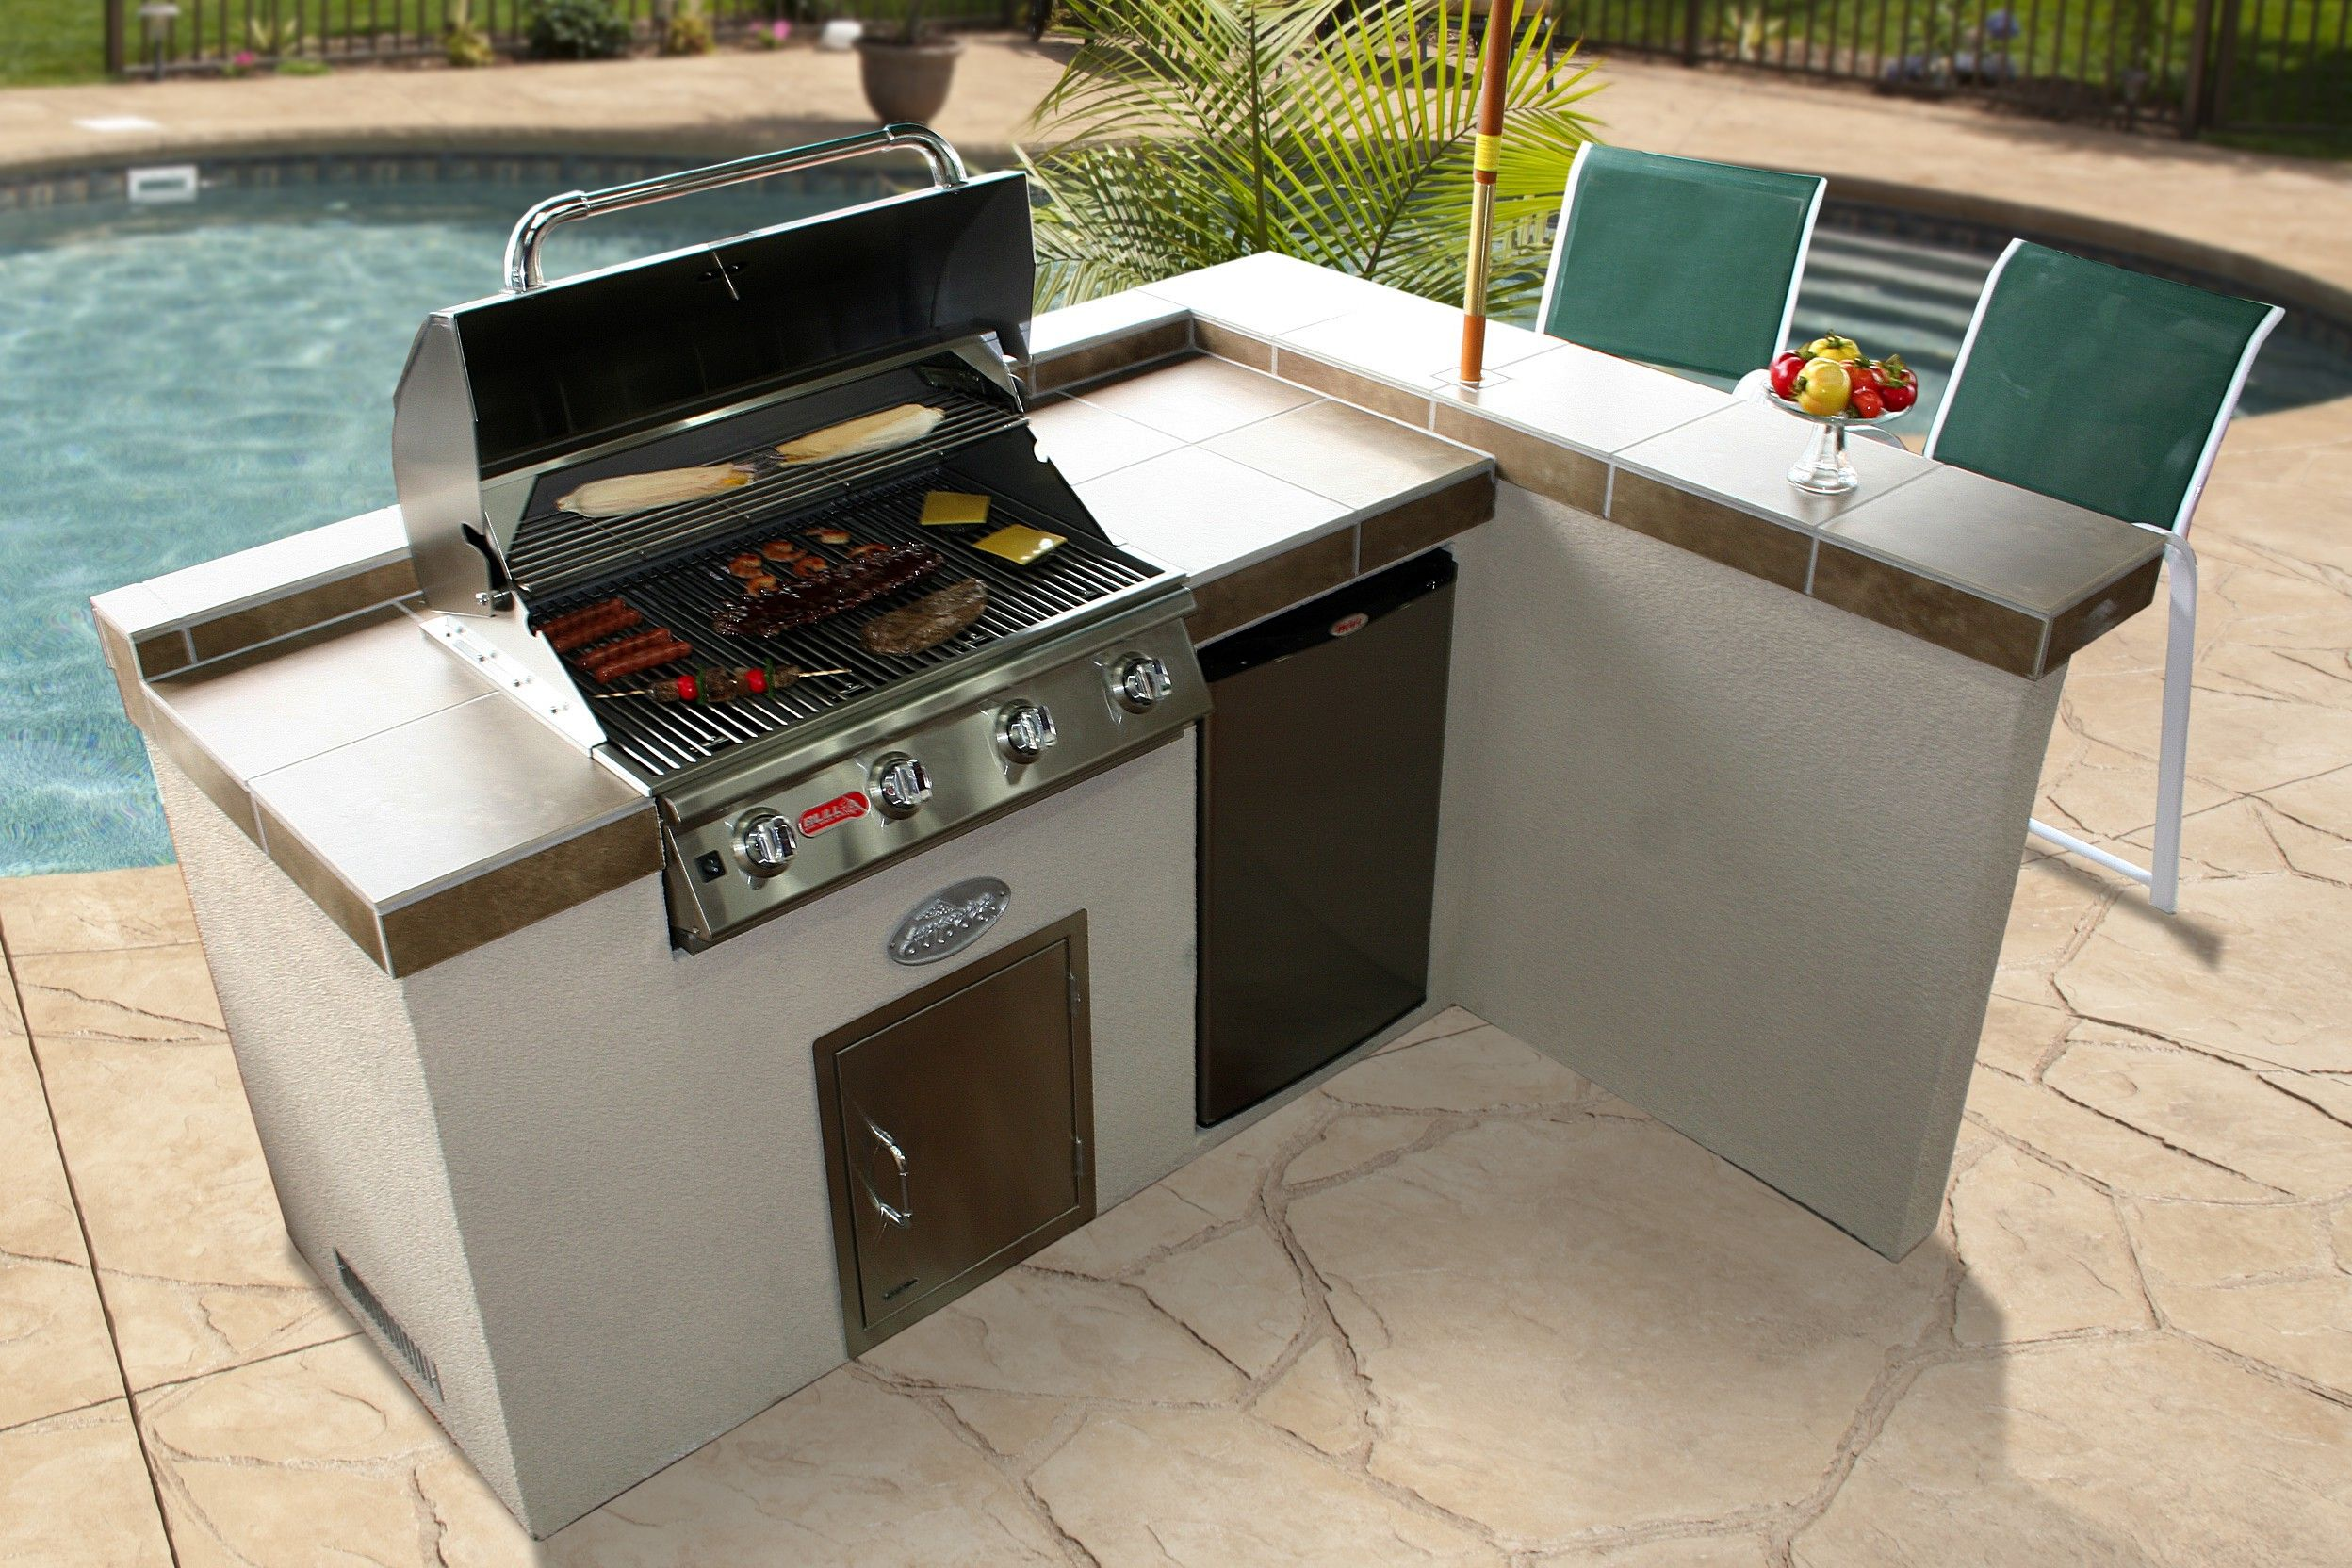 Stucco and tile with side bar ledge outdoor bbq kitchen for Outdoor kitchen islands and bars